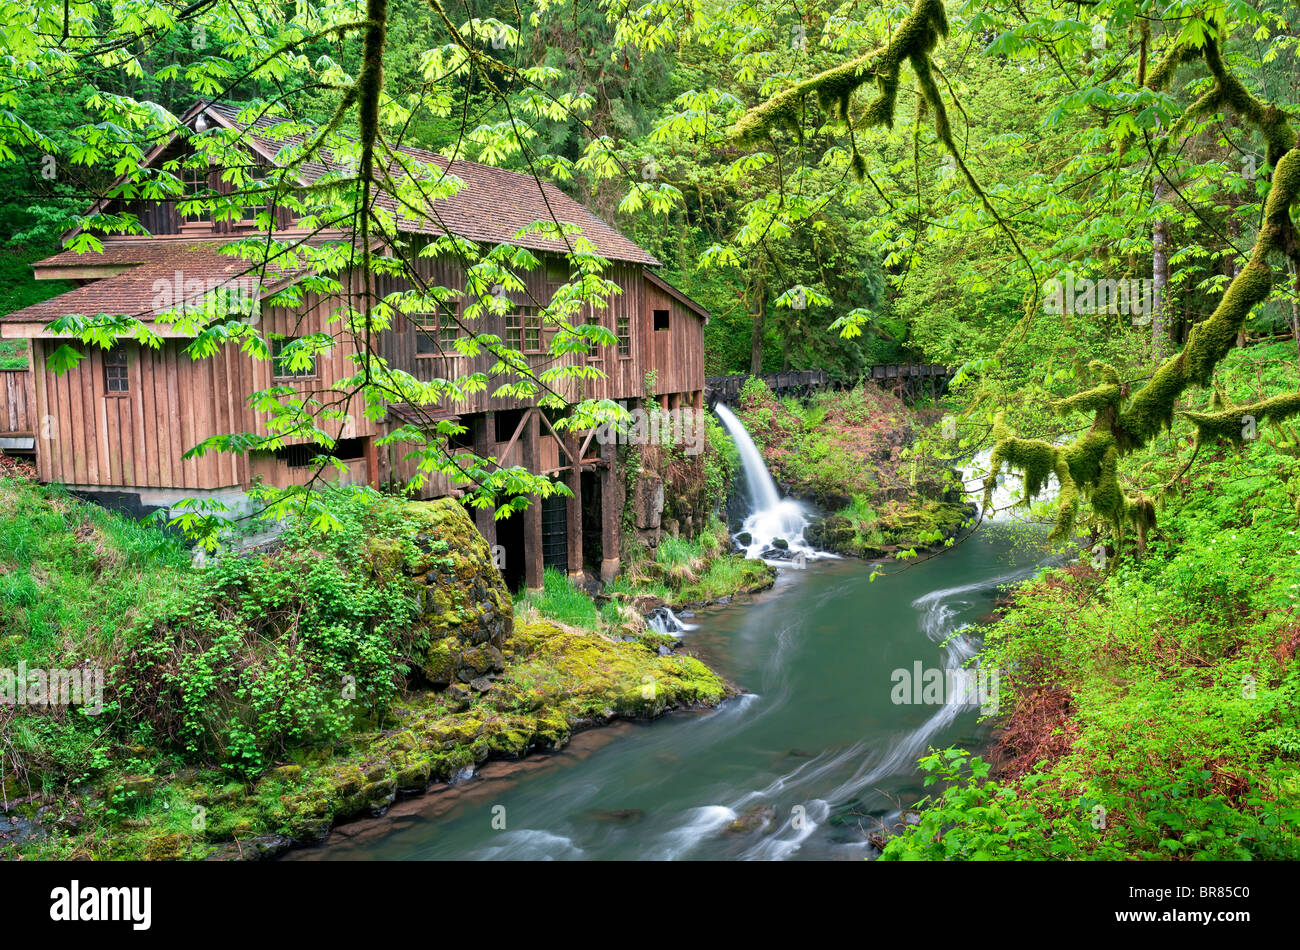 Cedar Creek Grist Mill im Frühjahr. Woodland, Washington Stockbild